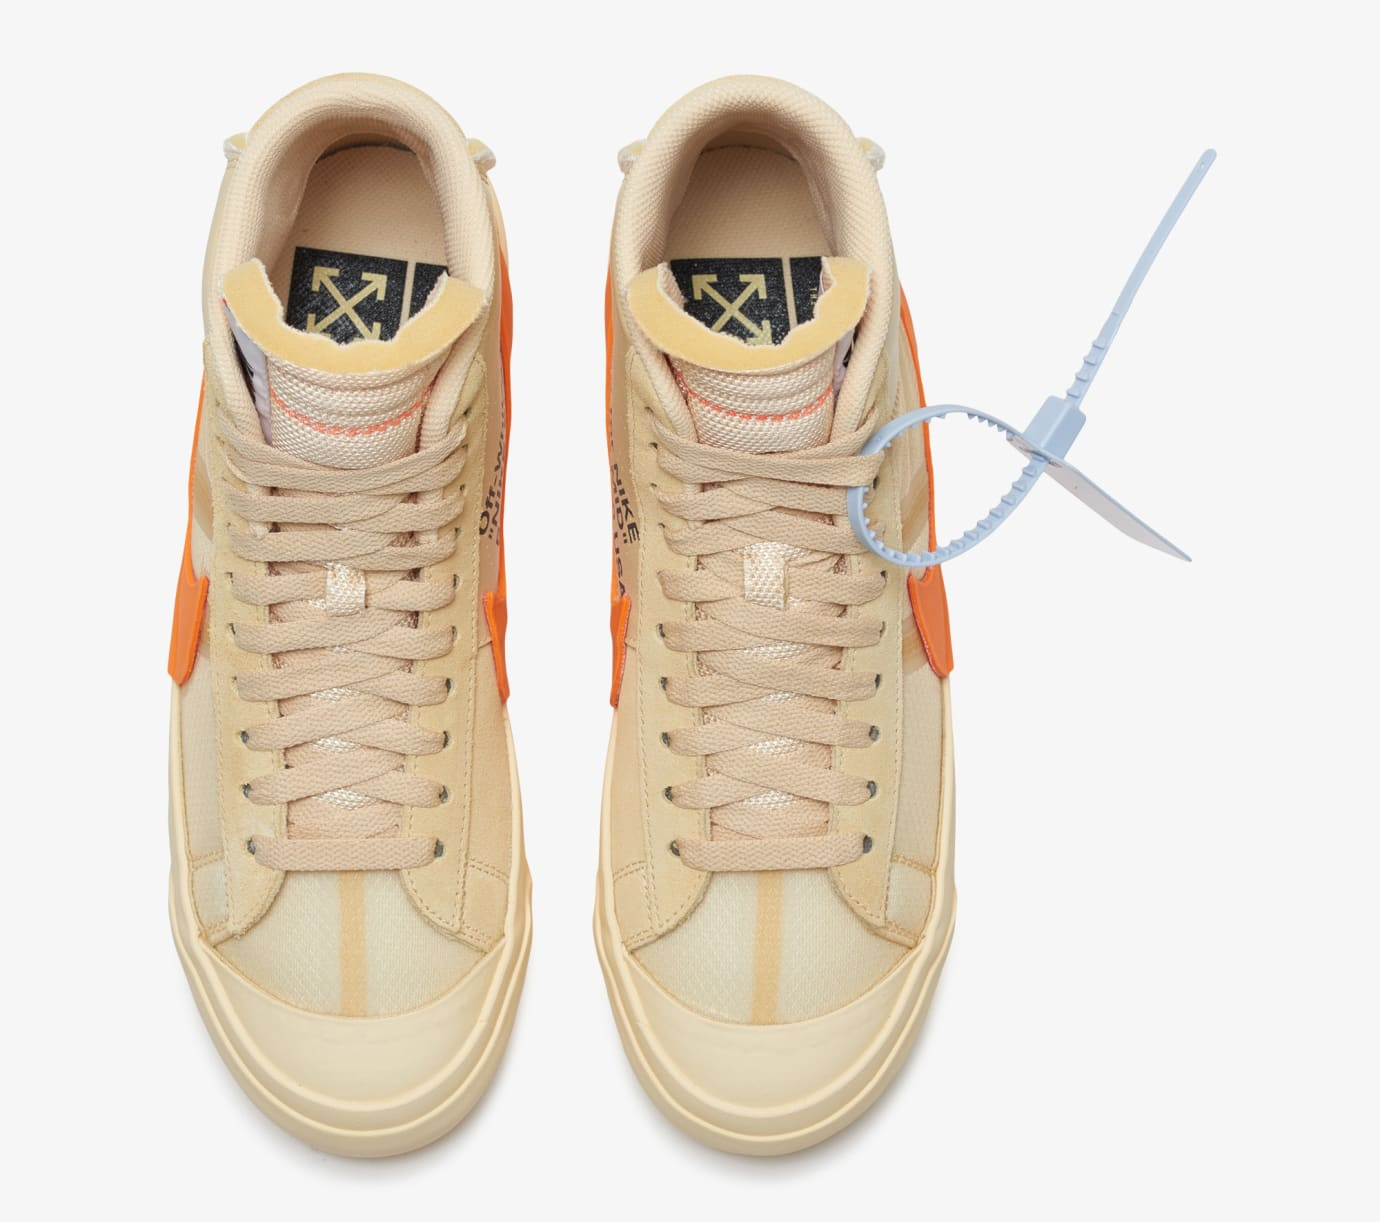 d4f44495bf61 Image via Nike Off-White x Nike Blazer  All Hallows  Eve  AA3832-700 (